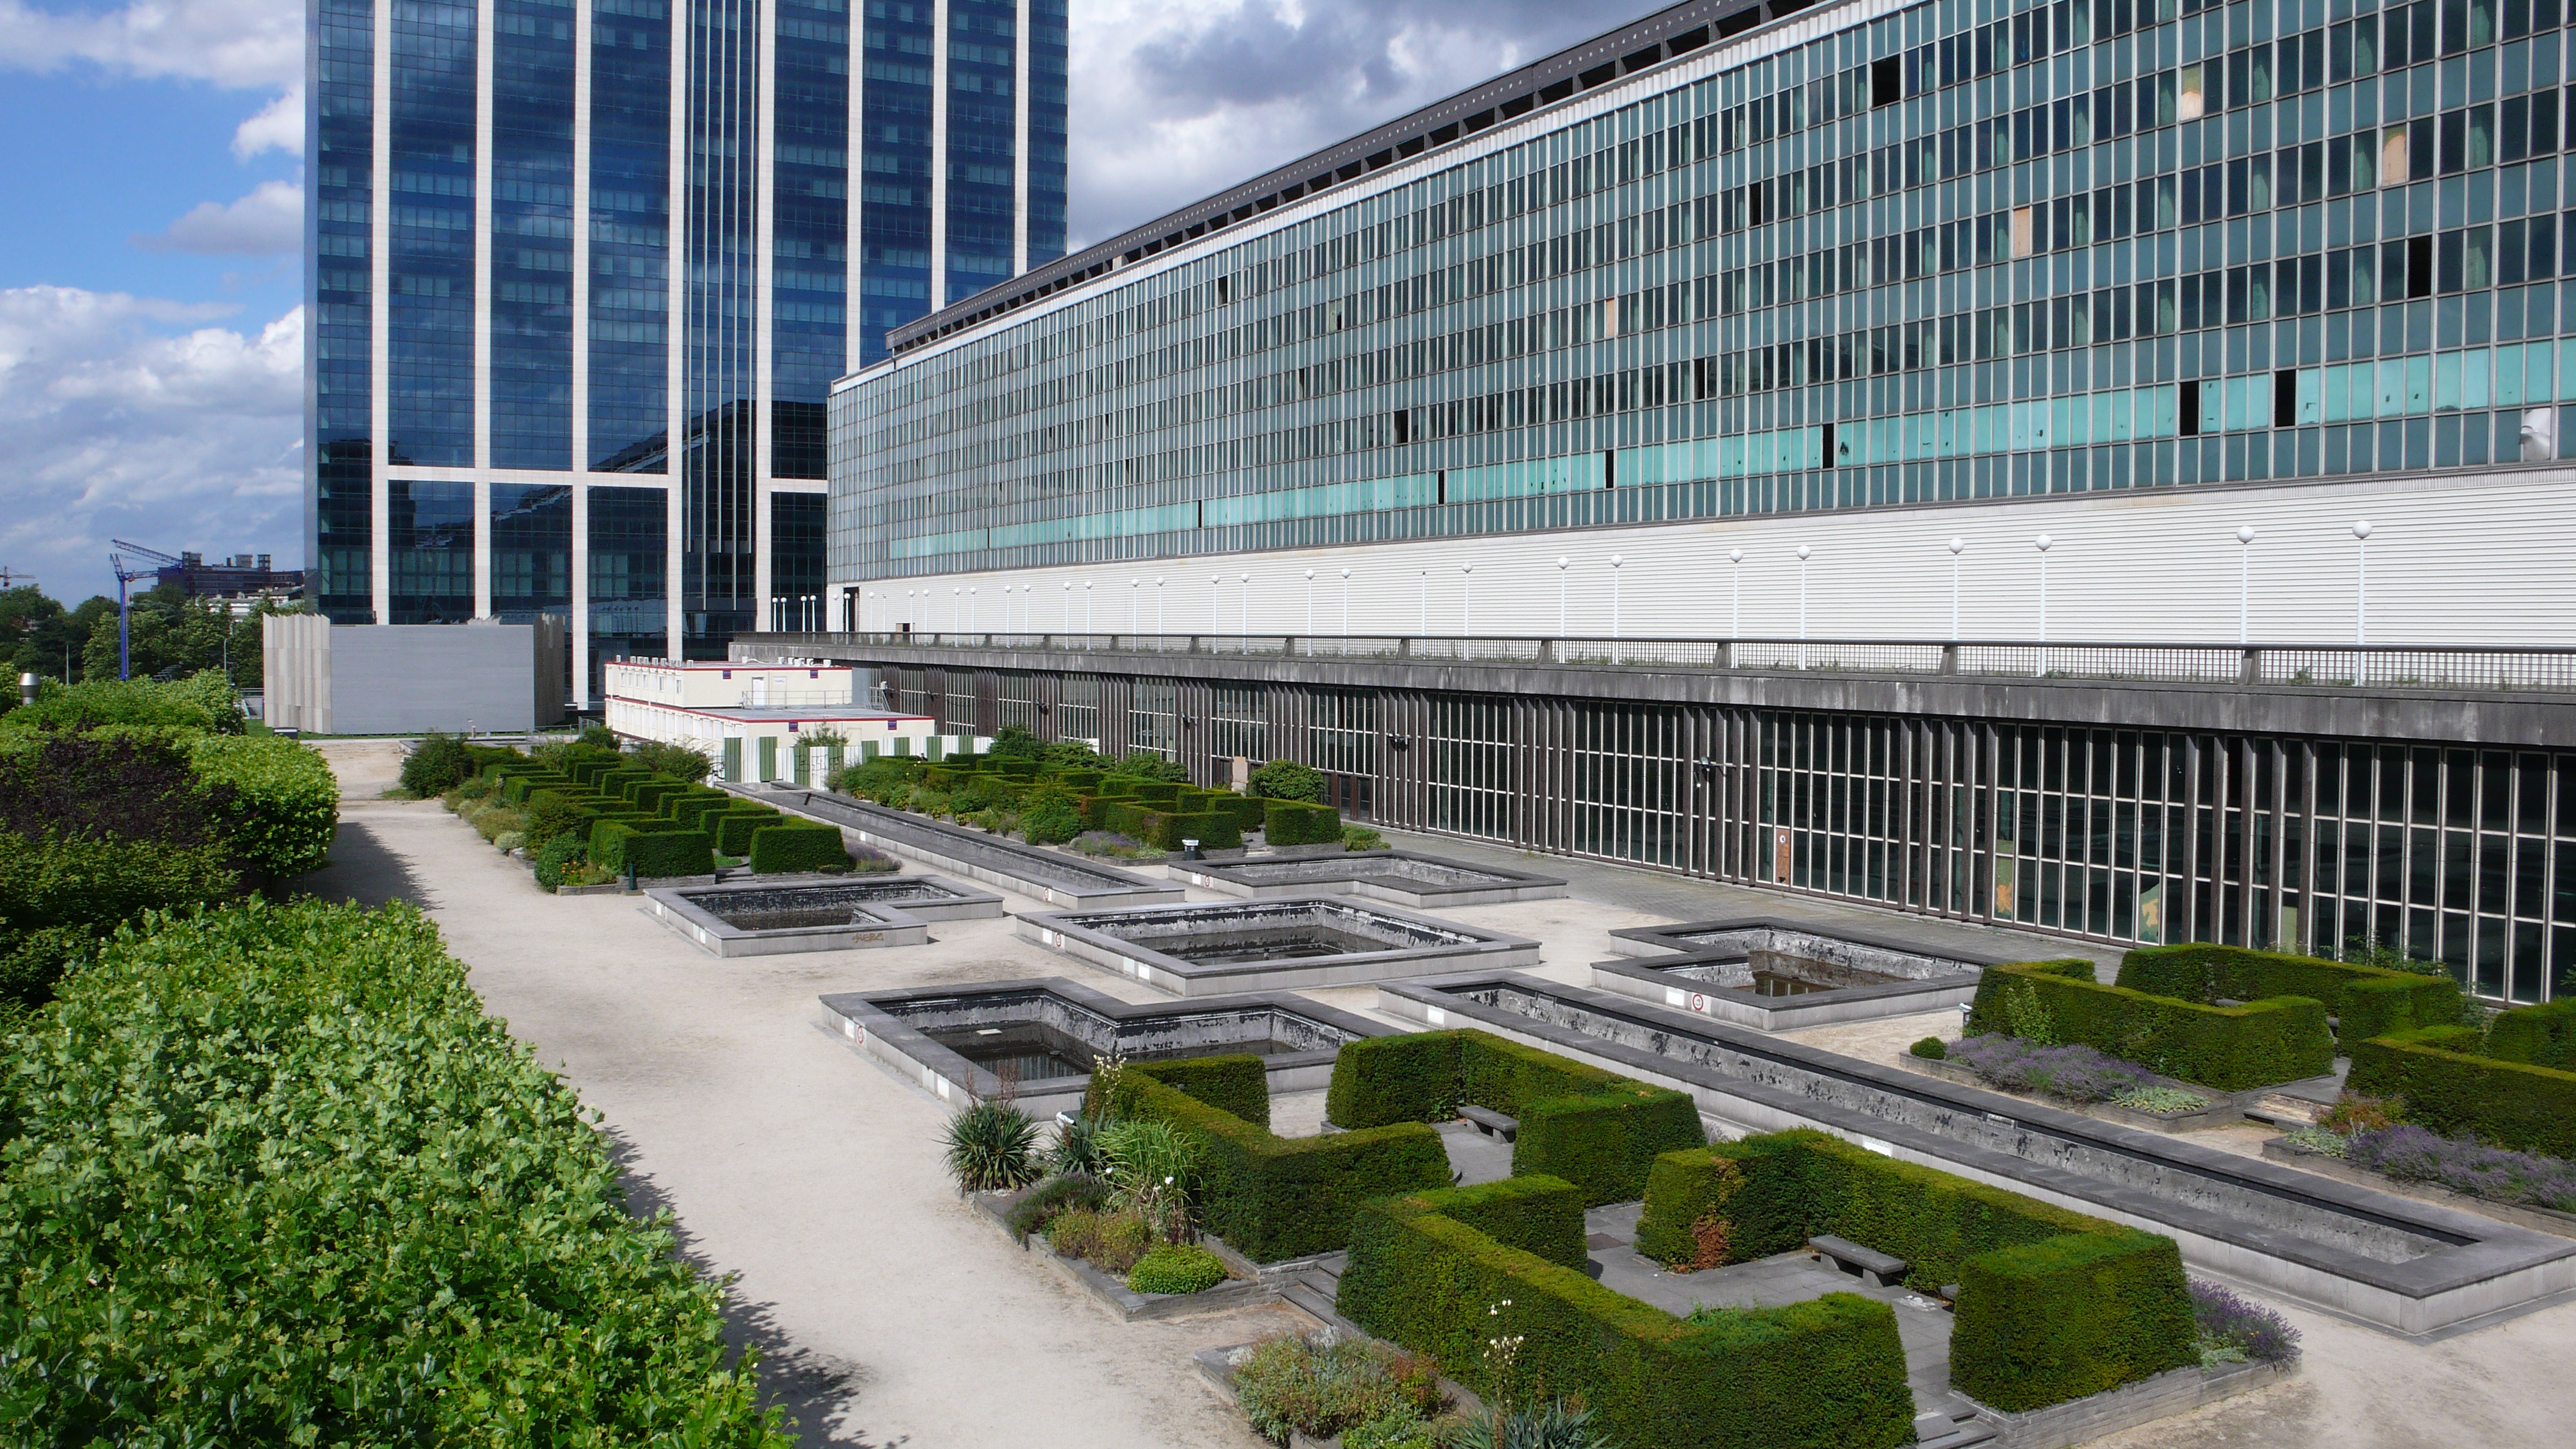 René Pechère Garden Administrative Complex in Brussels, Belgium. View of geometric gardens with modern administrative buildings in background